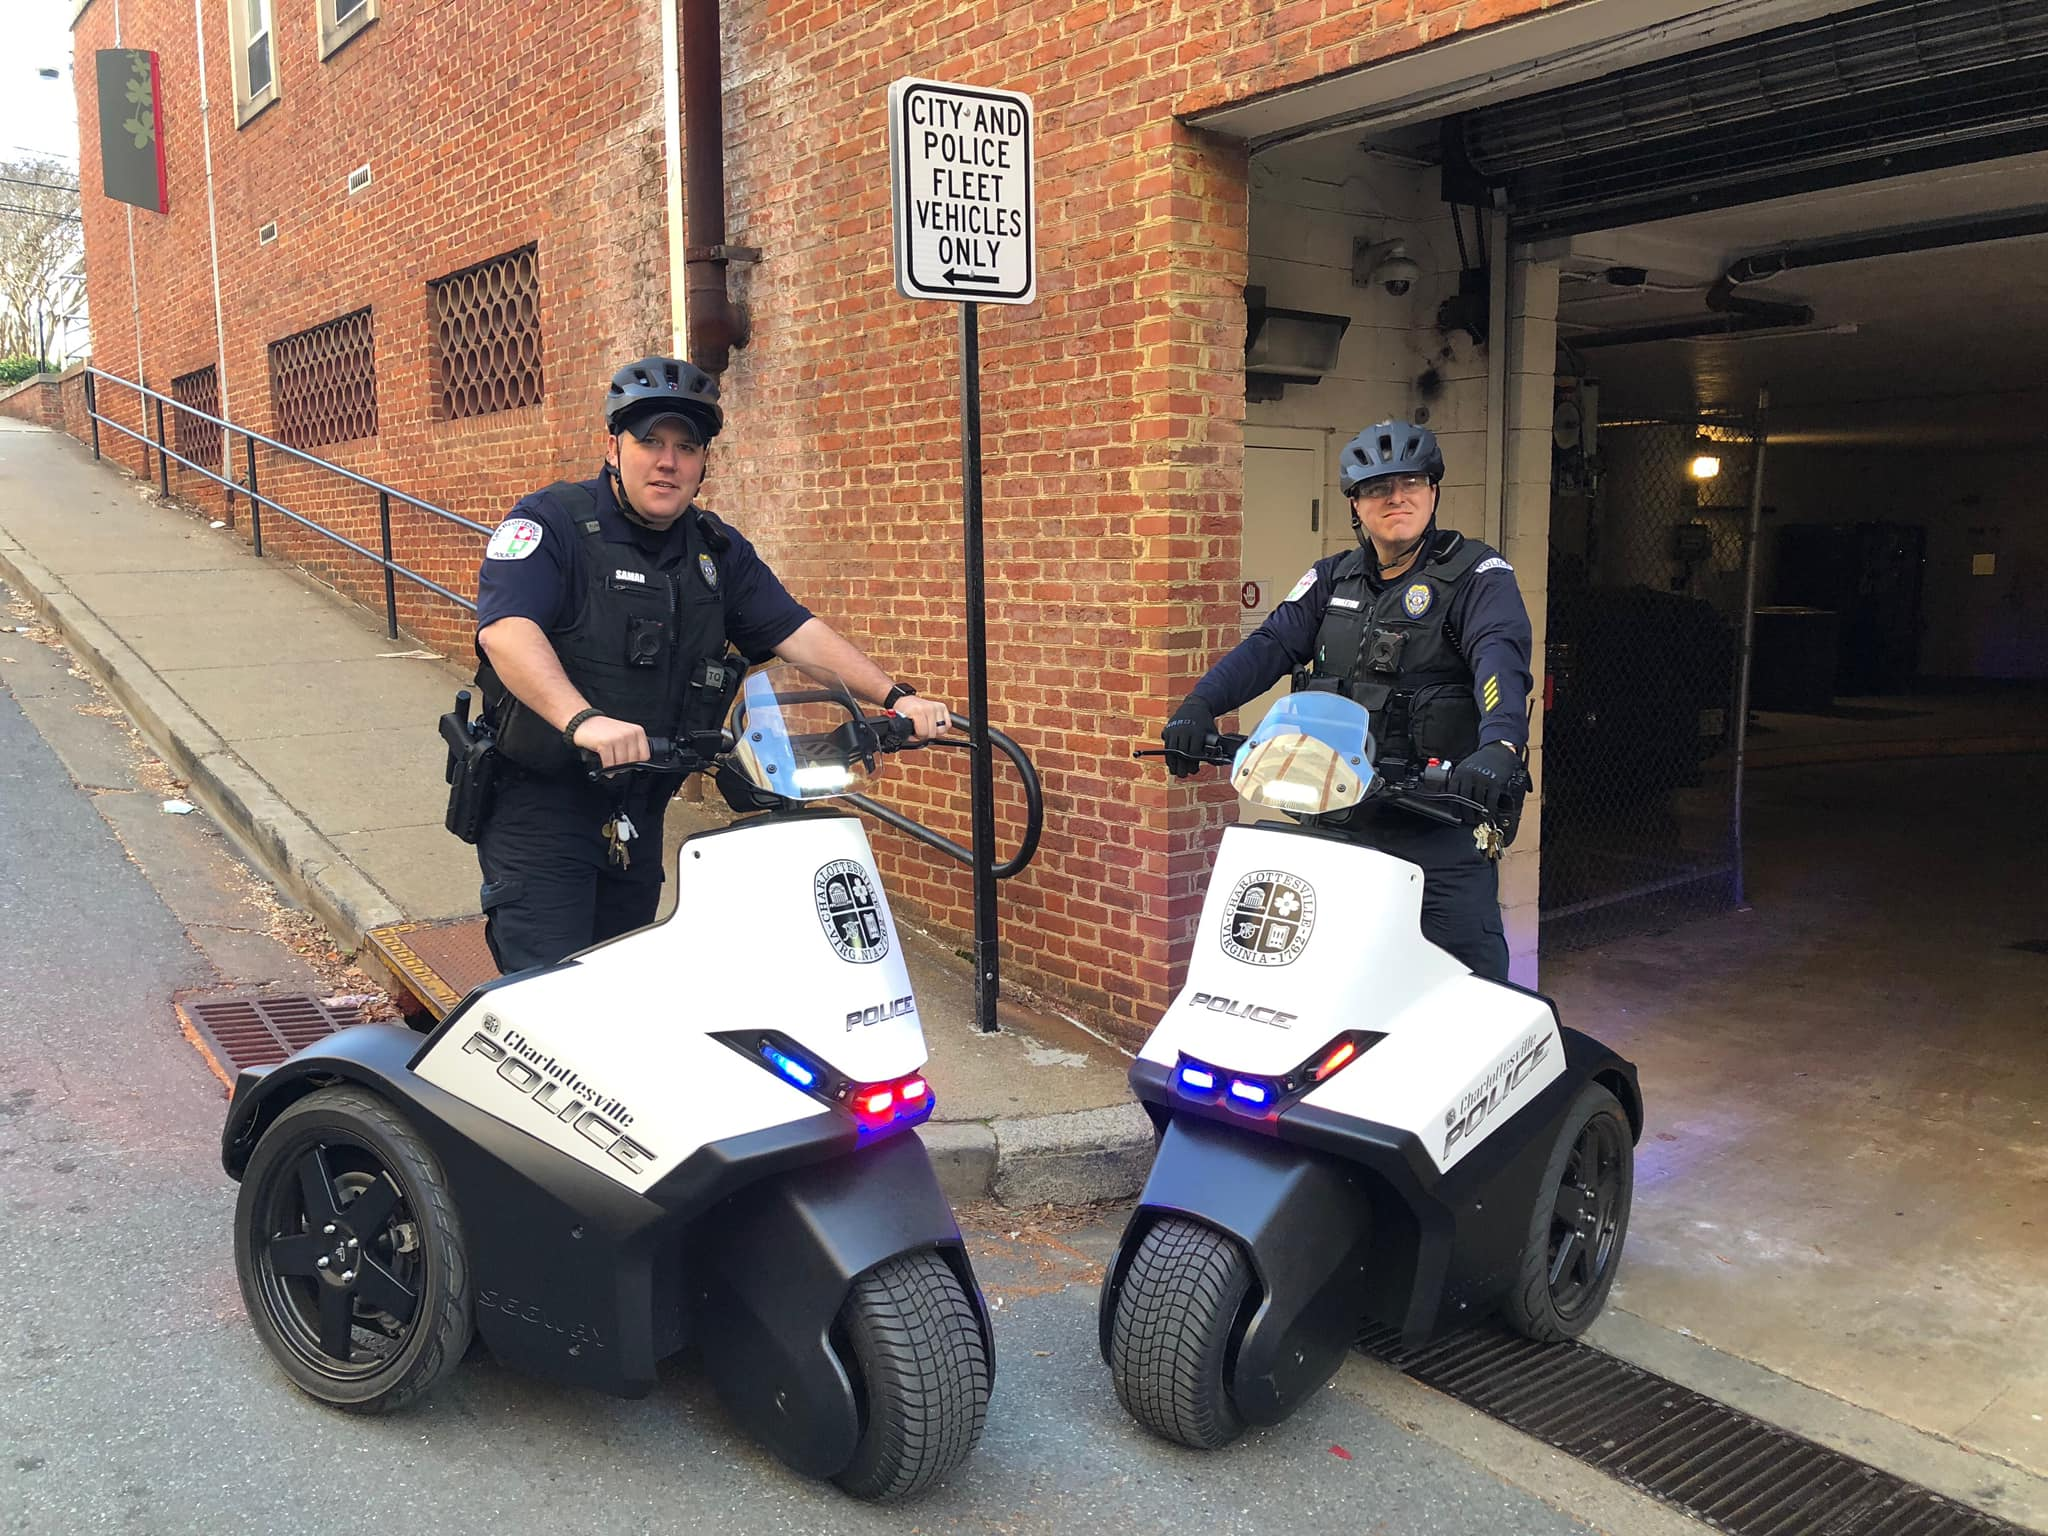 Officers posing on segways